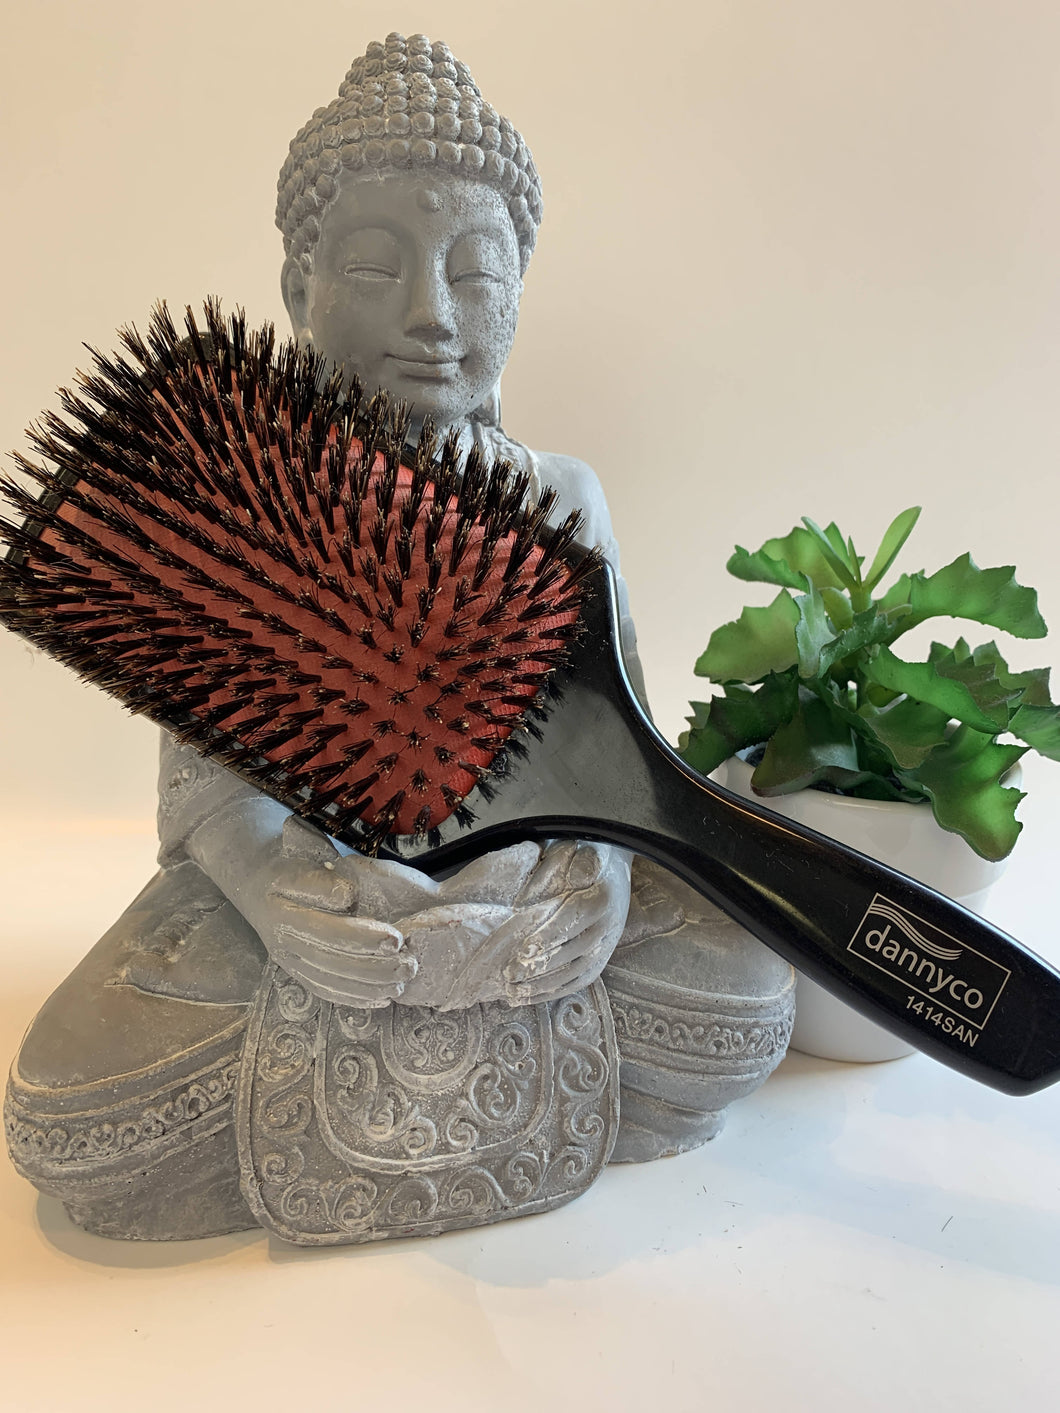 Dannyco Natural Boar Bristle Paddle Brush